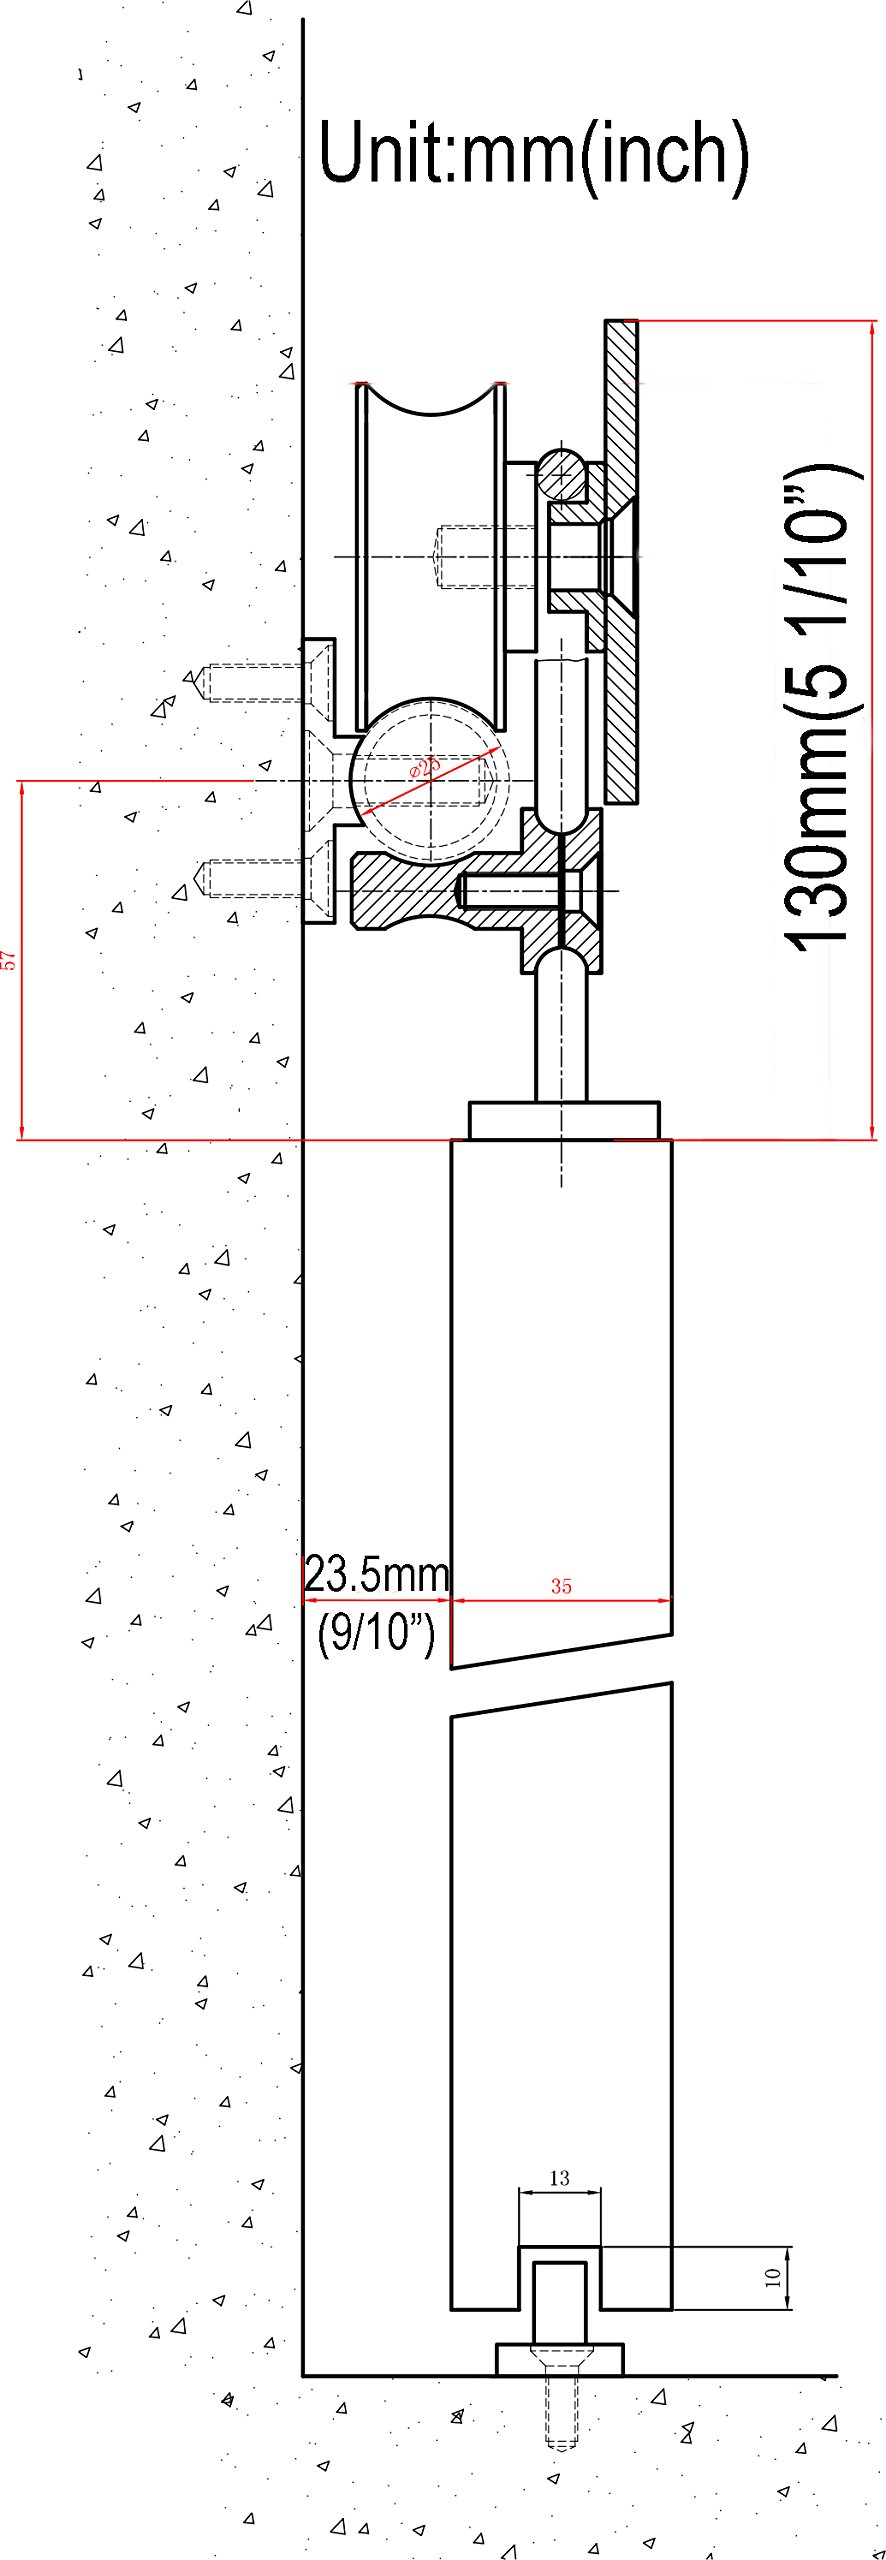 DIYHD 10ft Top Mounted Stainless Steel Double Sliding Barn Wood Door Track Kit Hardware